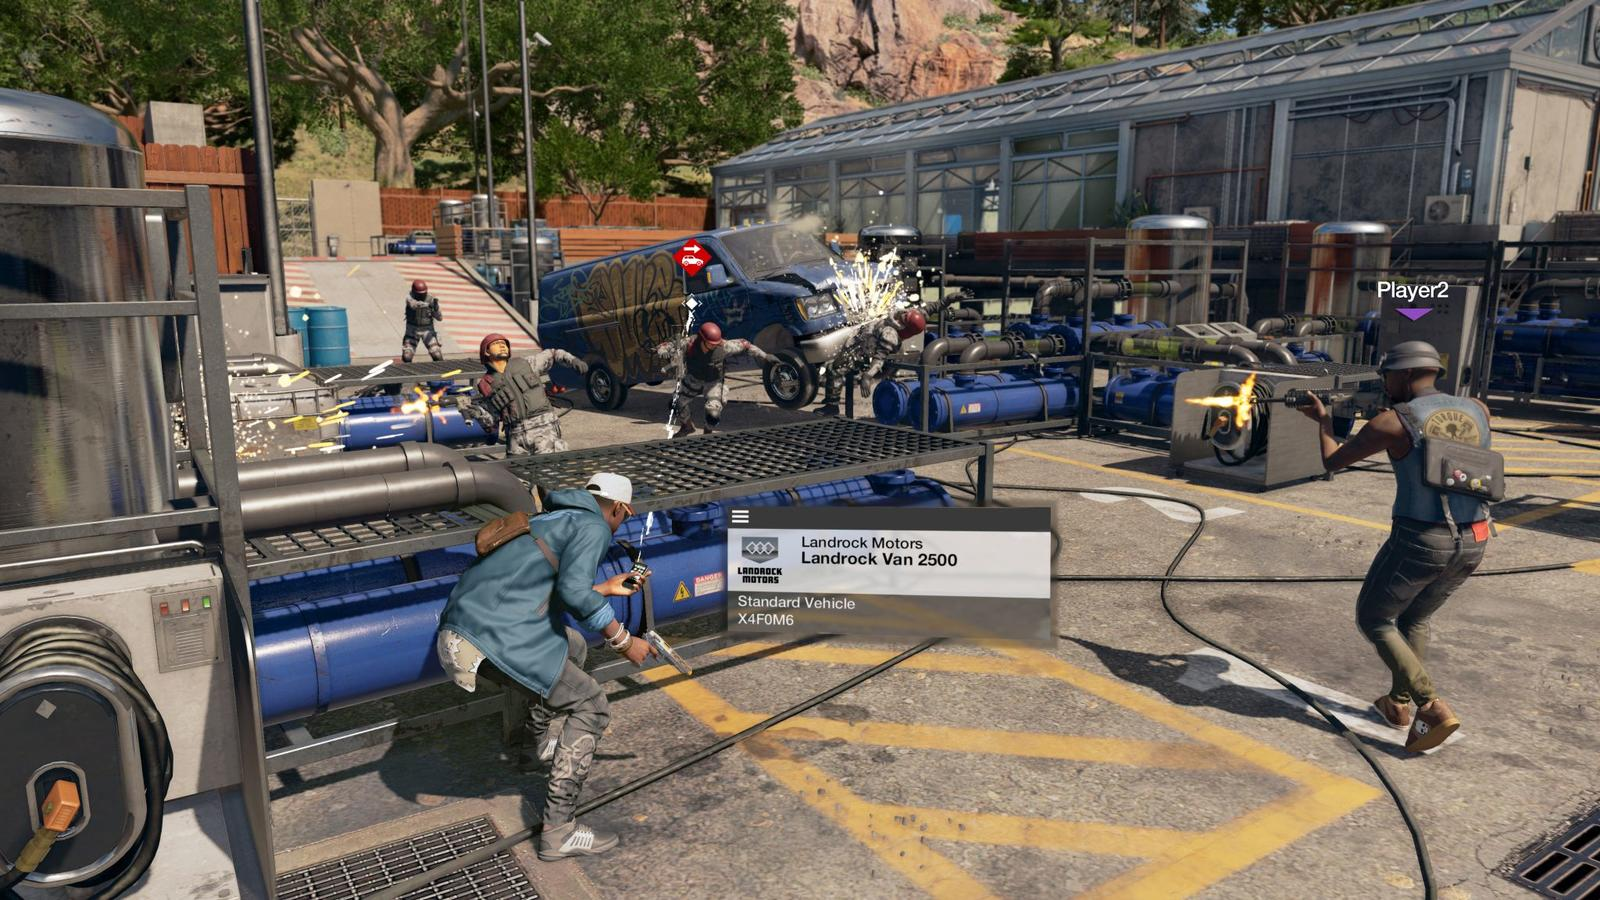 Watch Dogs 2 multiplayer hands-on - Glitches and glorious